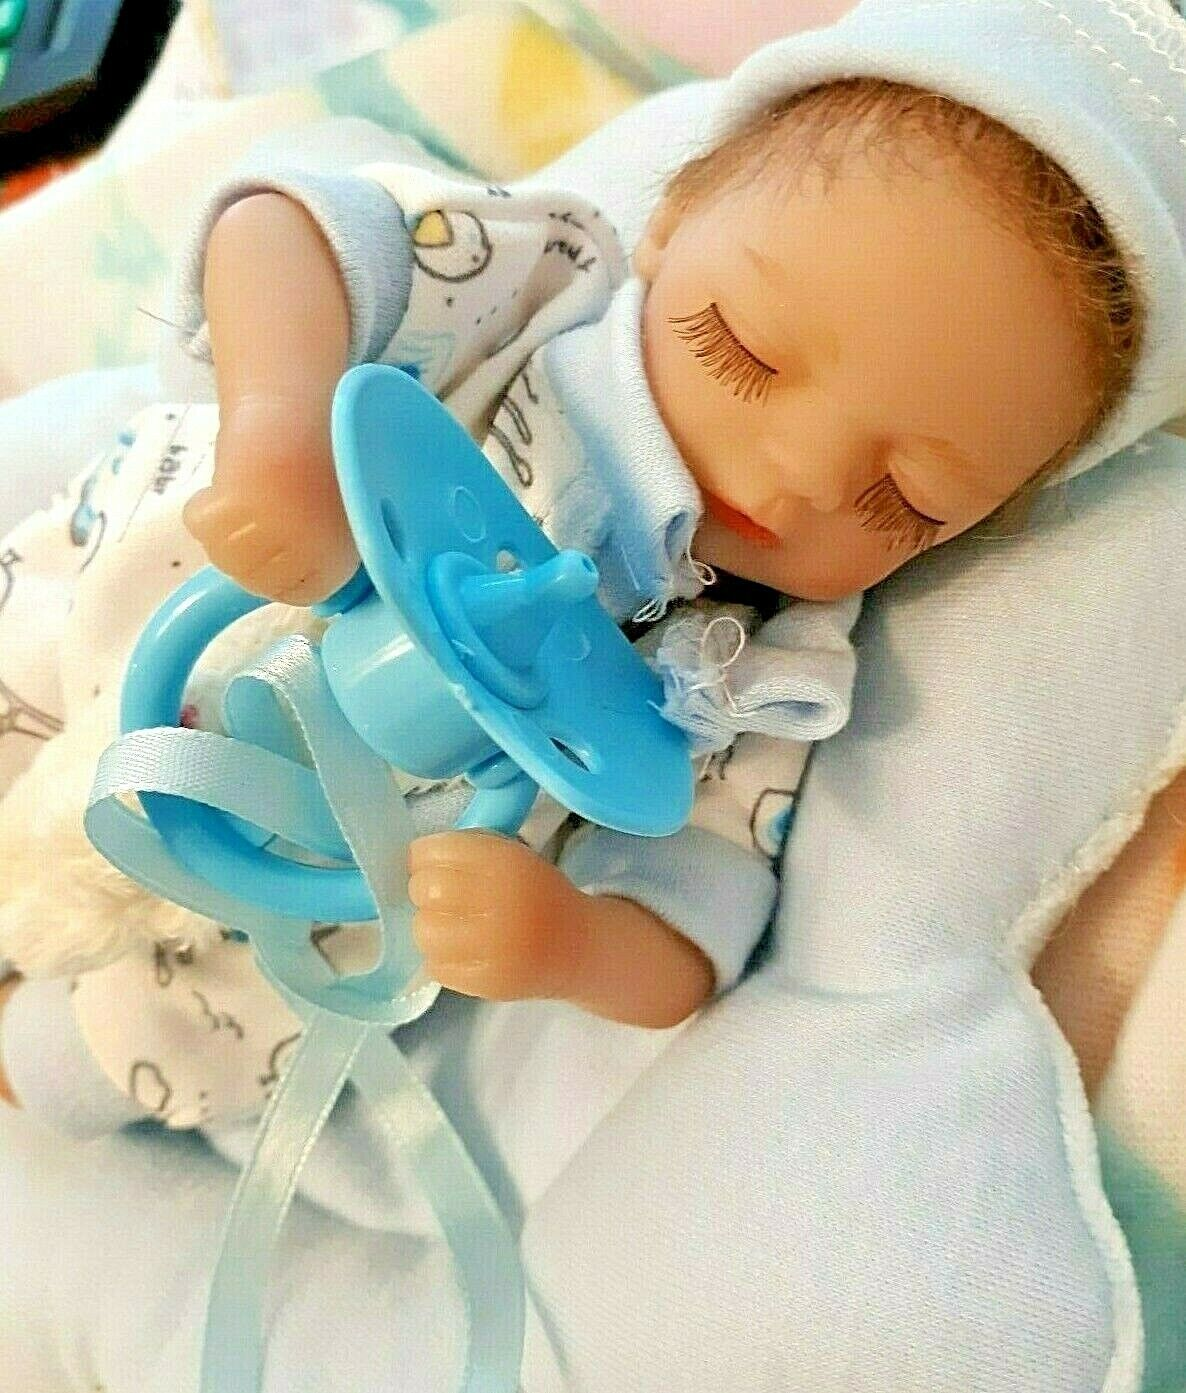 TINY 8 IN MICRO PREEMIE BABY REBoRN GIRL  MEMORY BABY TAKES A PACIFIER